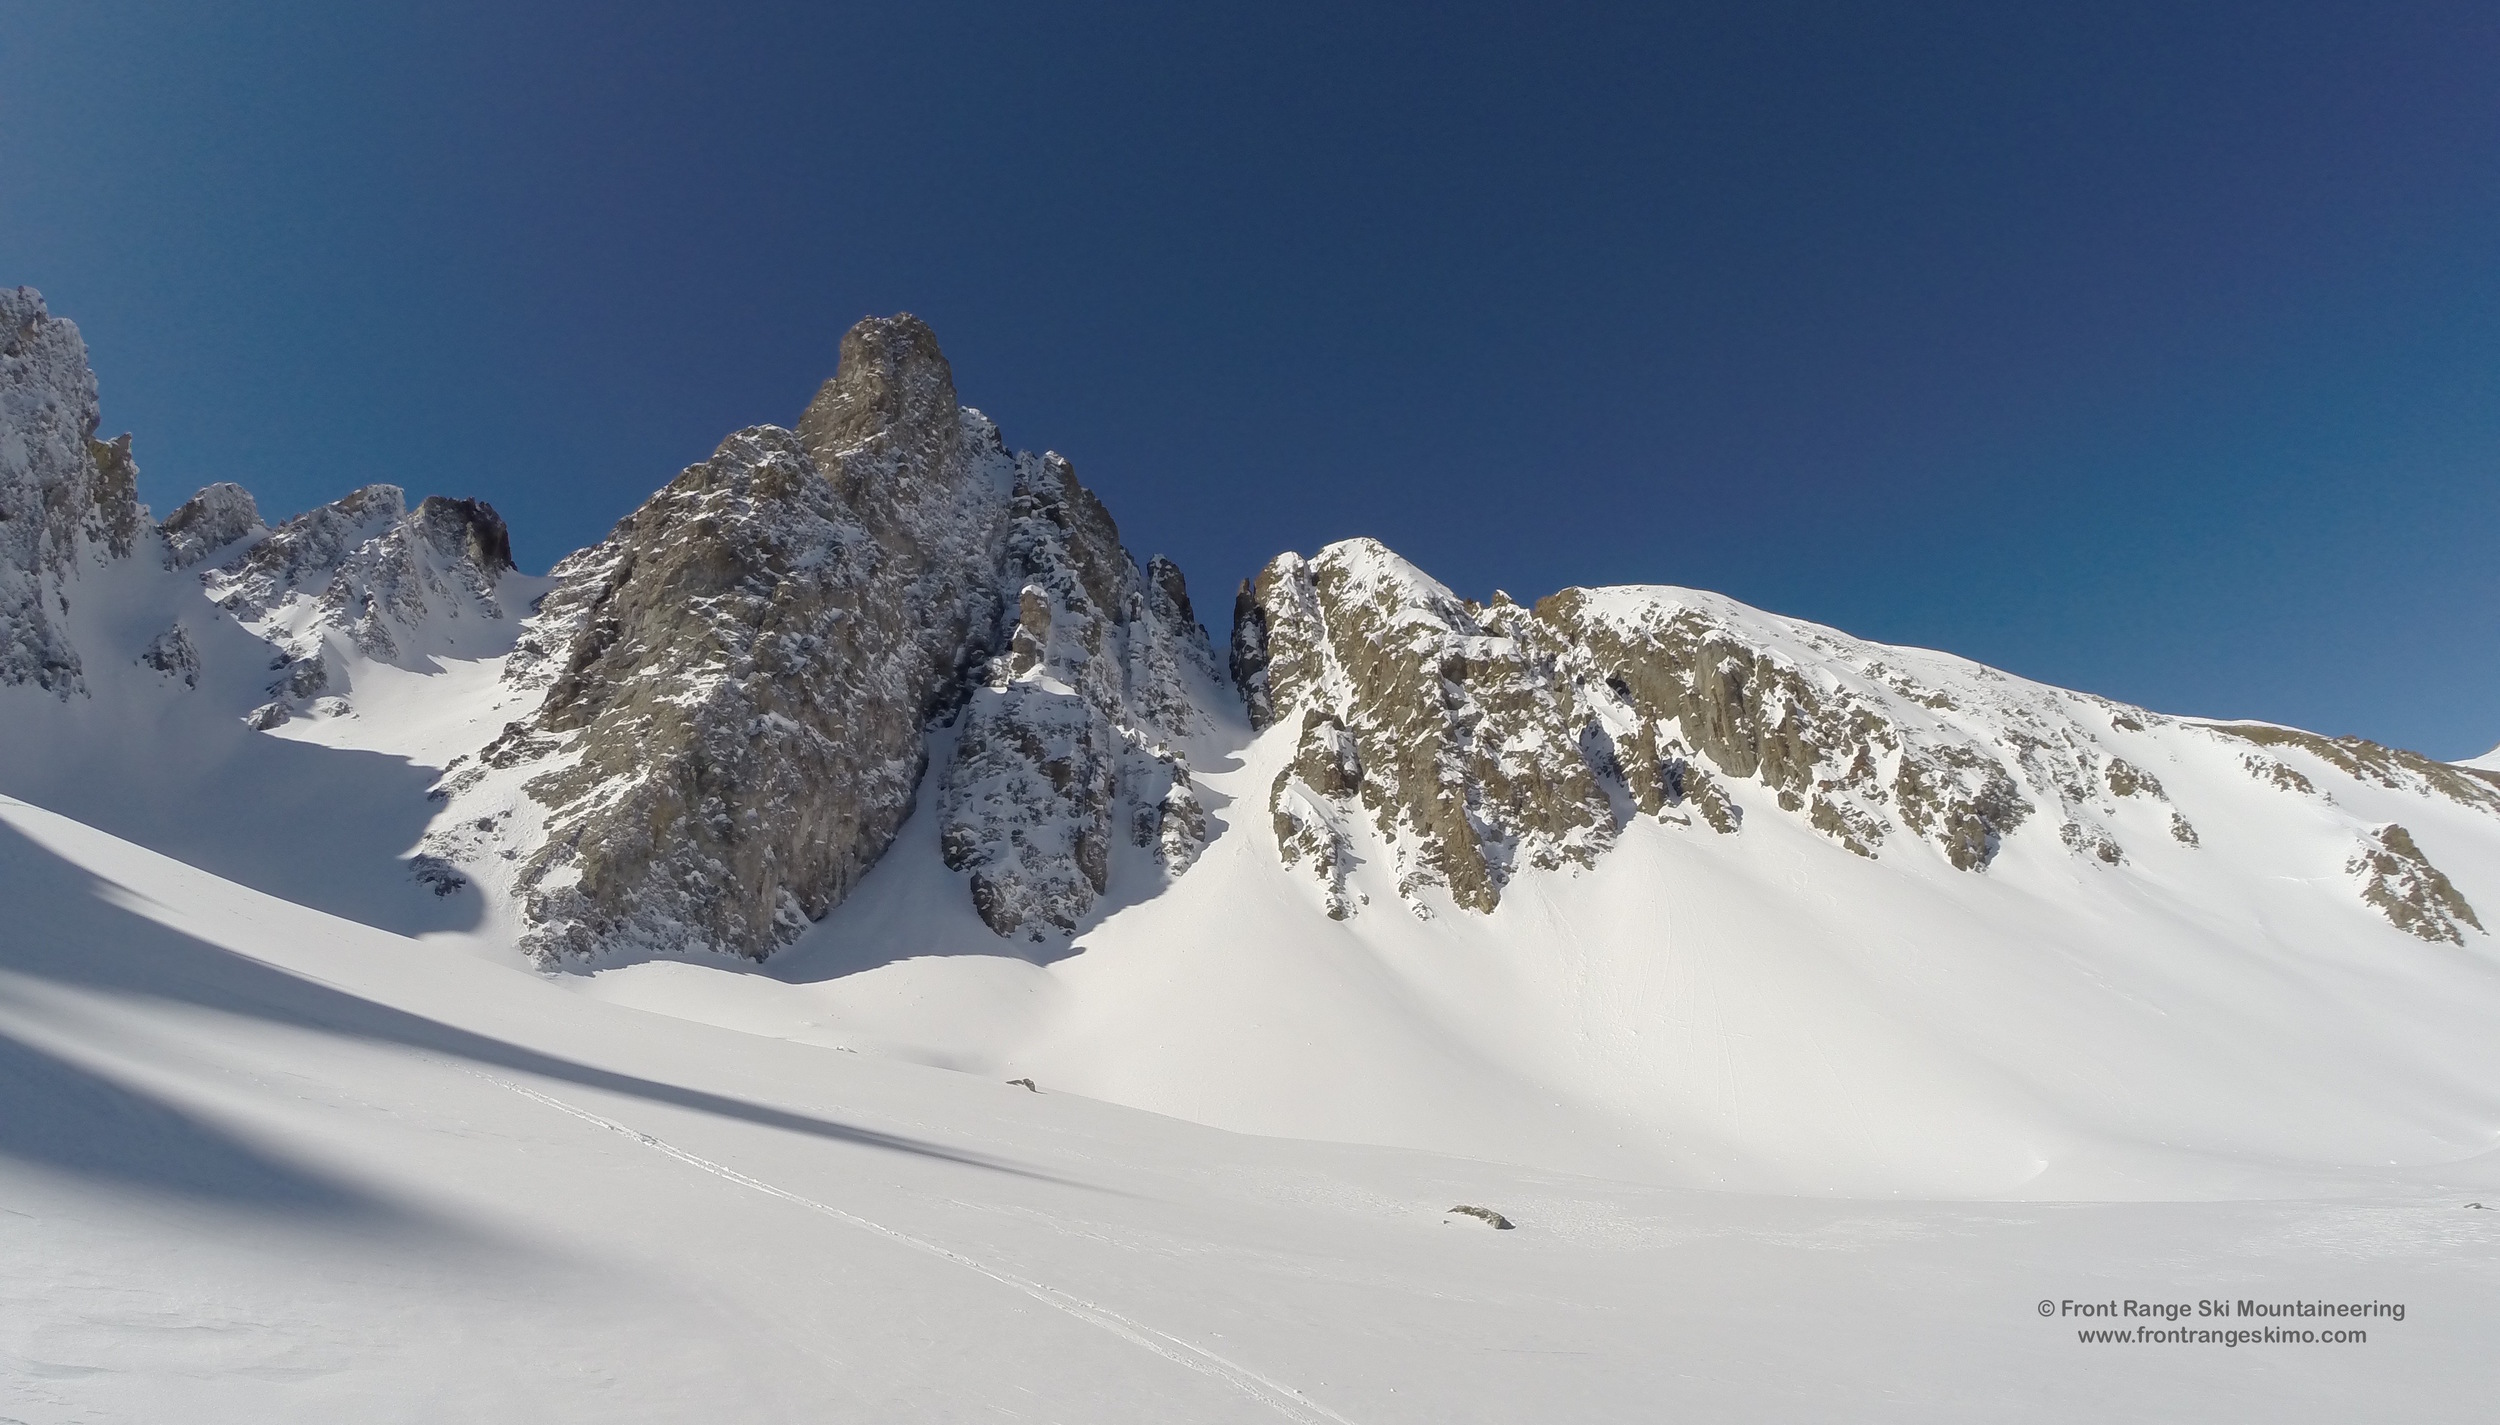 The Three Sisters, Nokhouloir, and Breakfast Couloir.